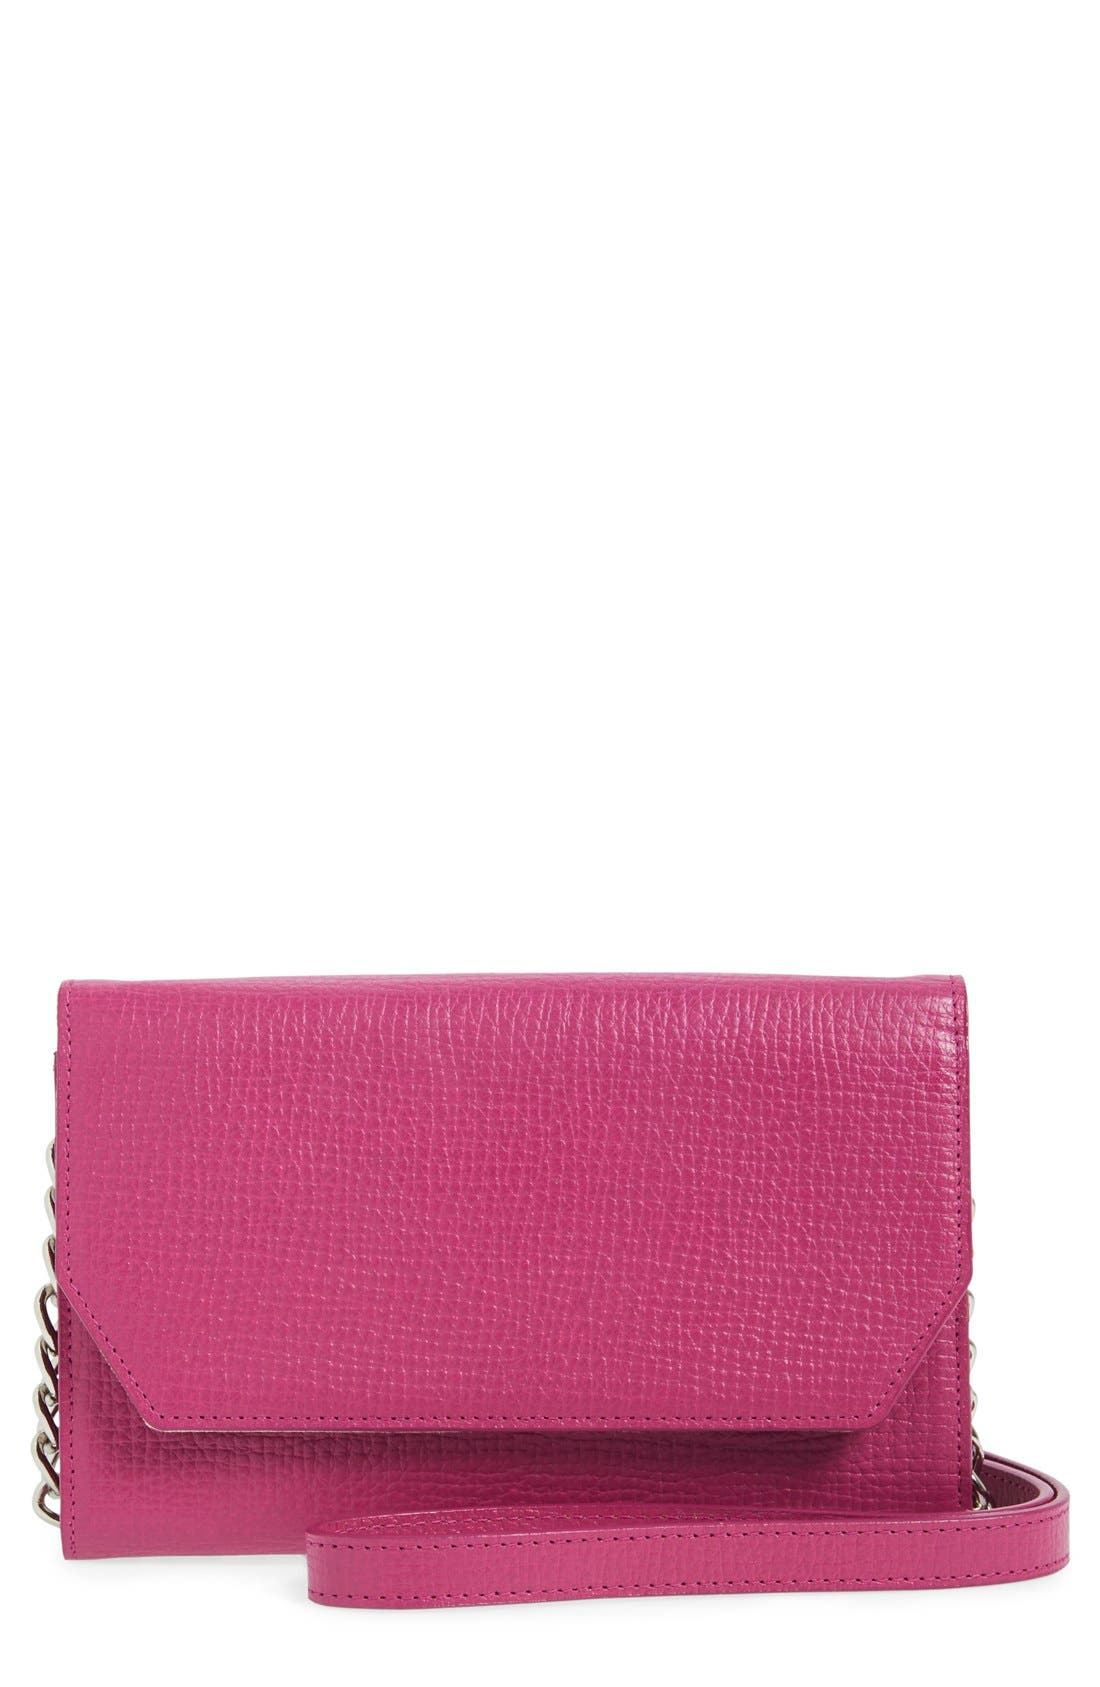 Main Image - Halogen Leather Crossbody Bag